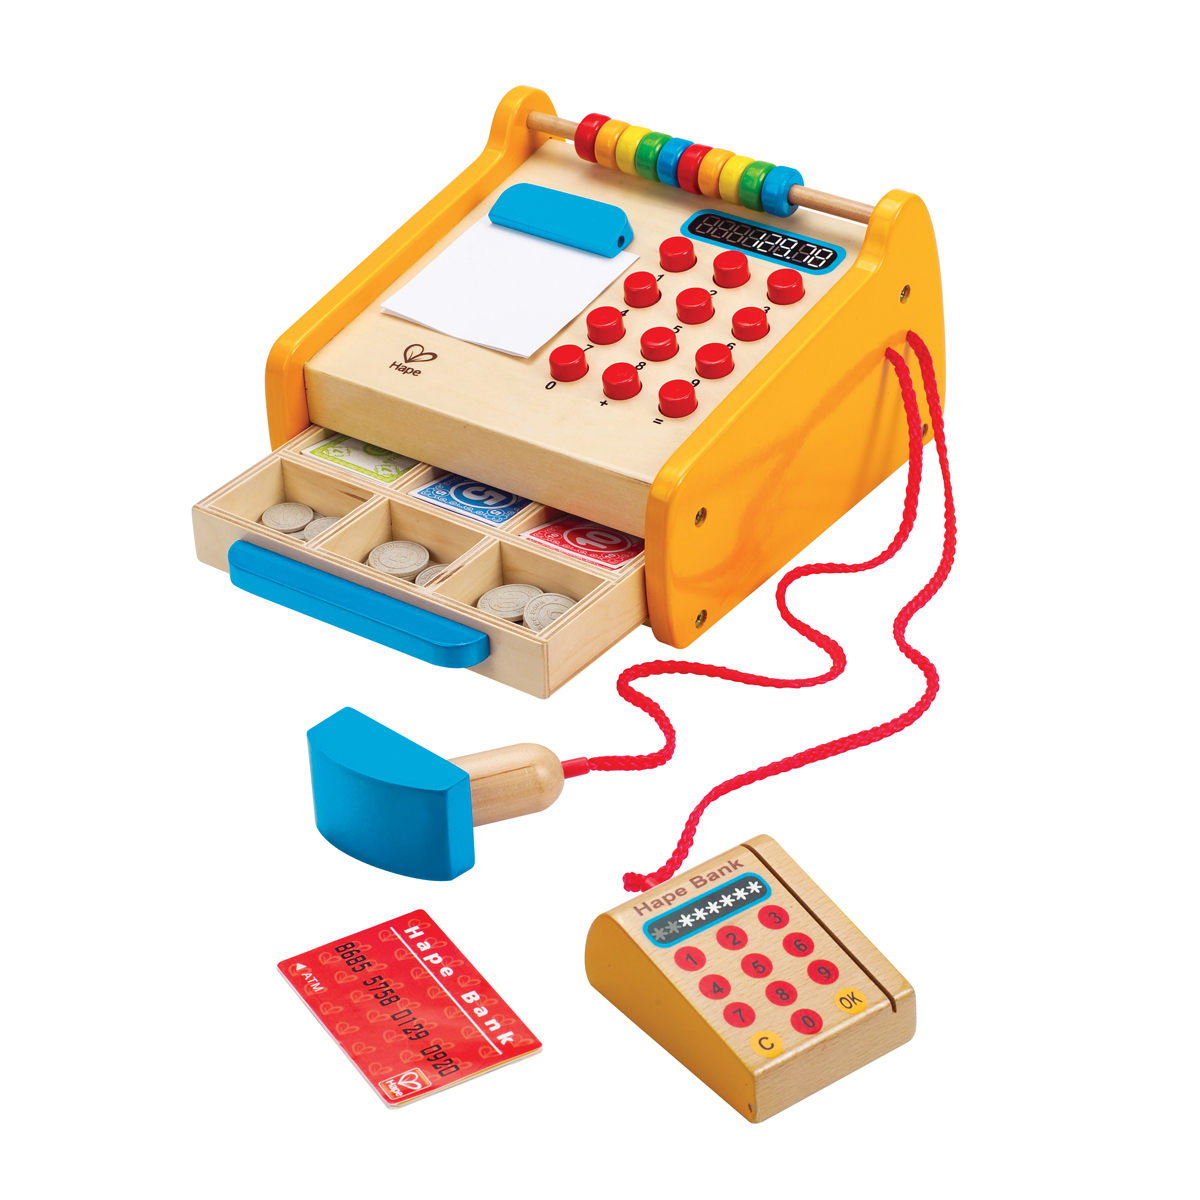 Hape Wooden Cash Register Toy Set